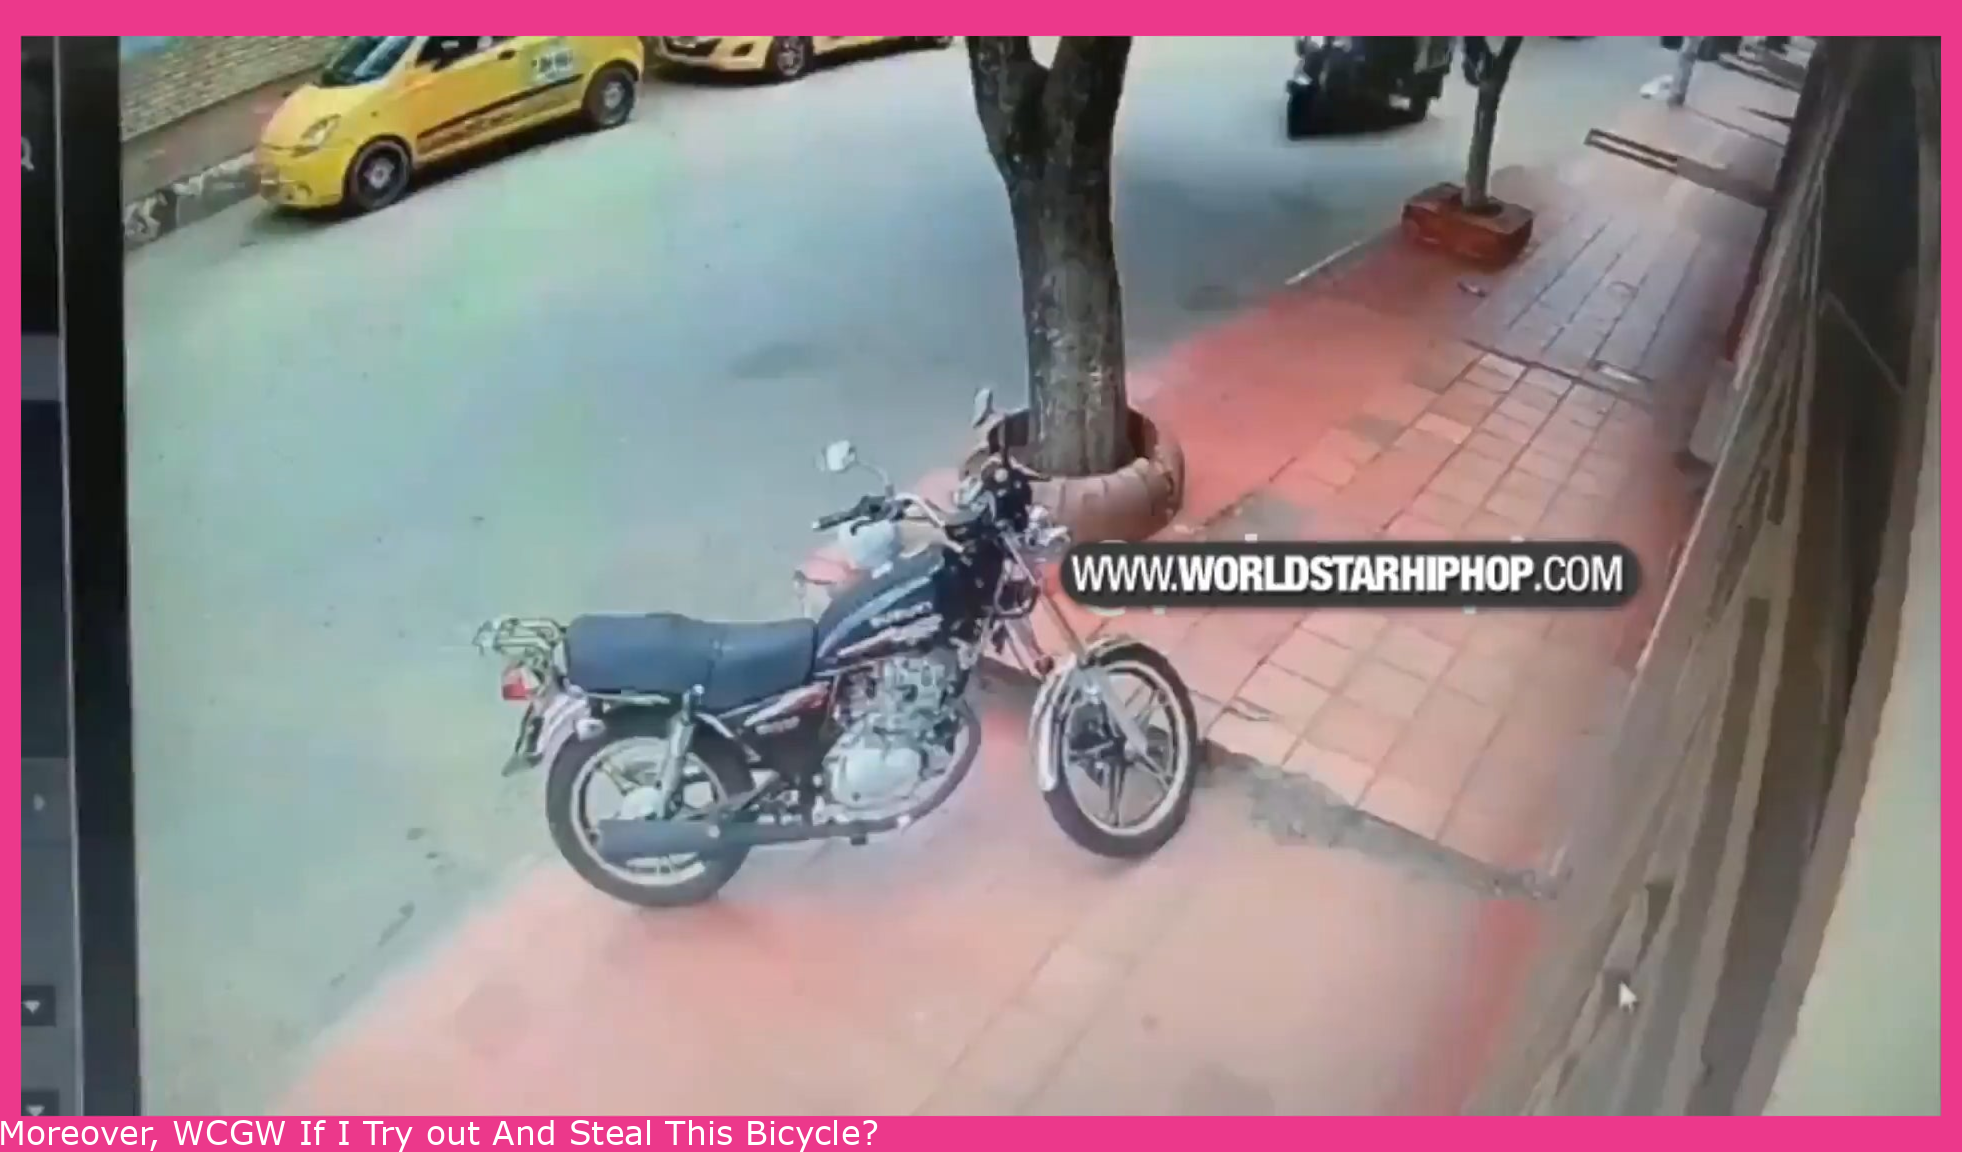 Besides, WCGW If I Try And Steal This Bike?